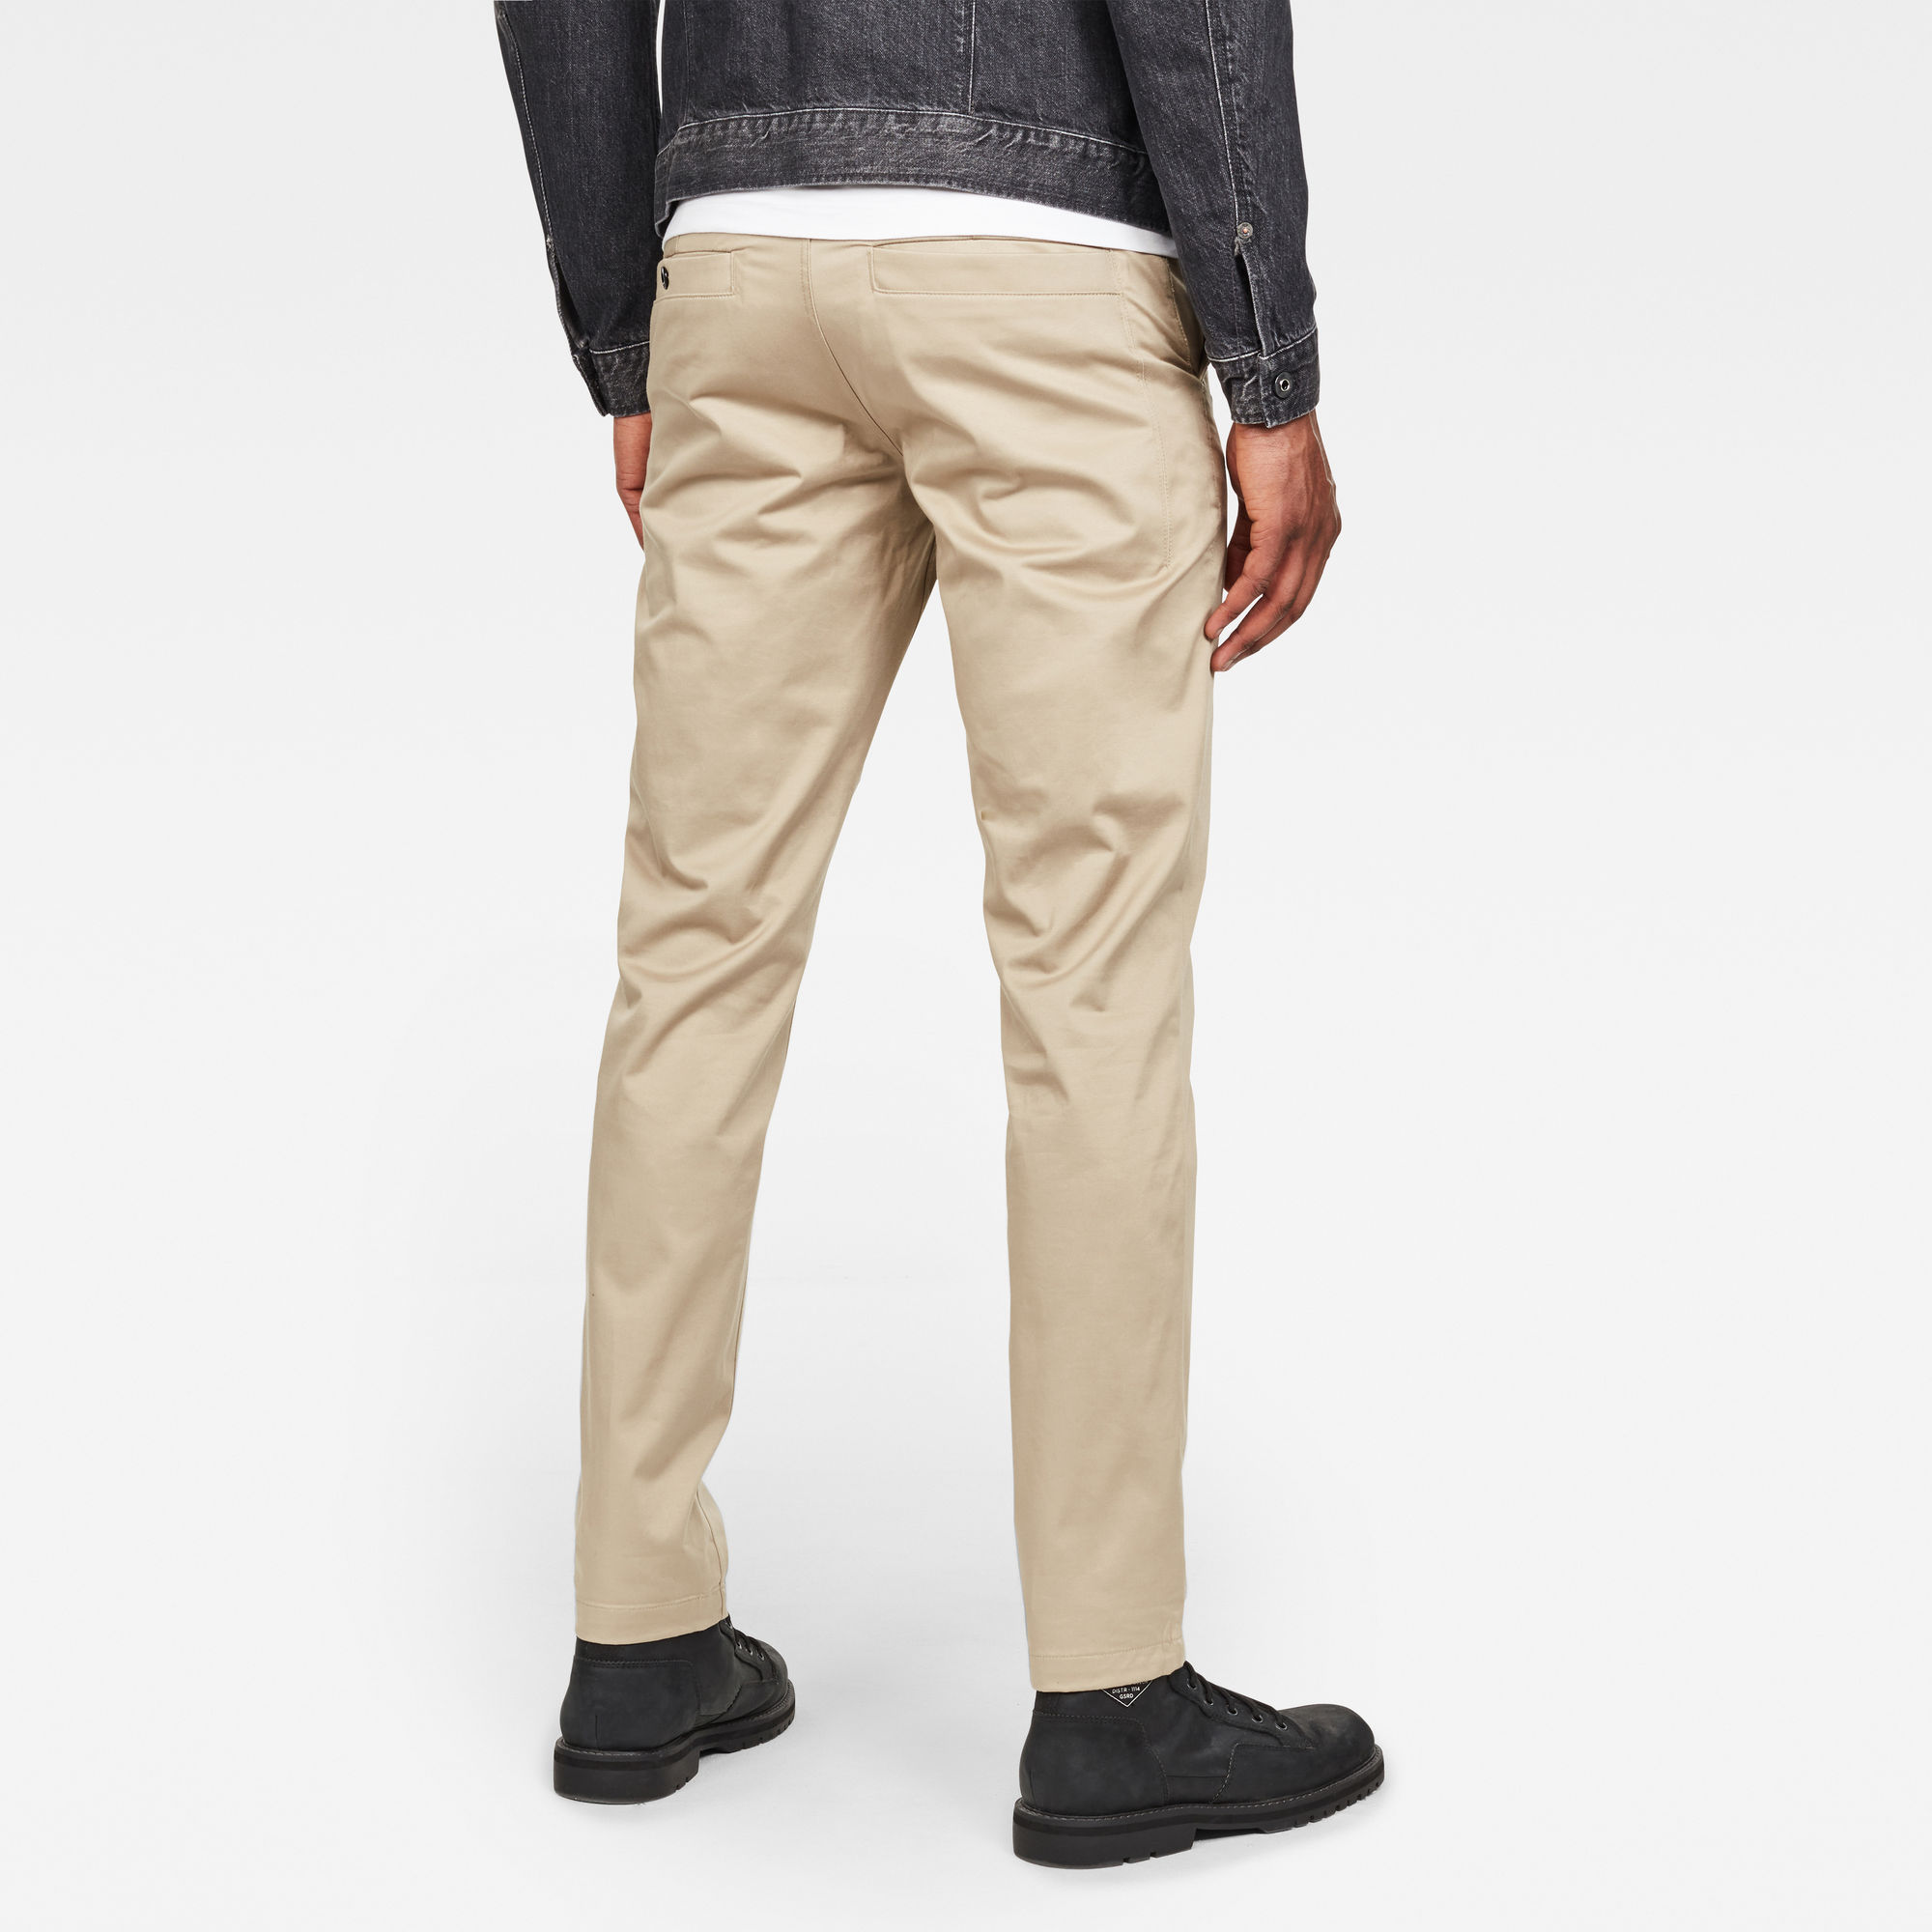 G-Star RAW Bronson Slim Chino